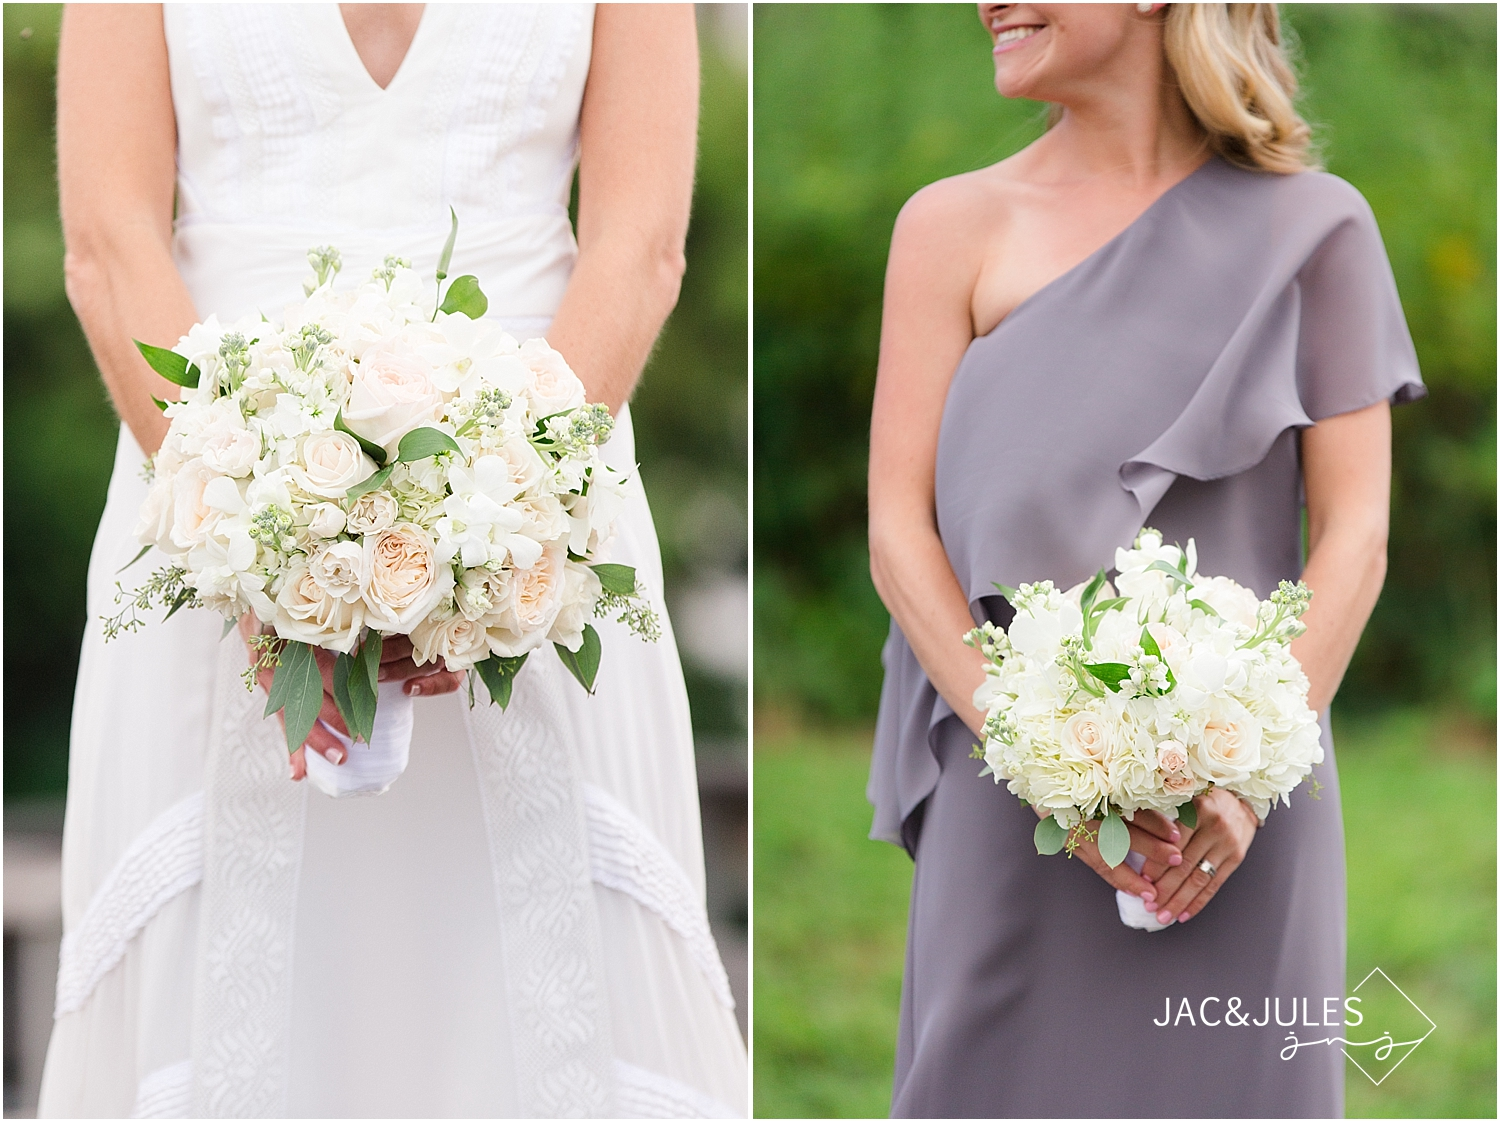 jacnjules photographs wedding bouquets for bridal inspiration 2017